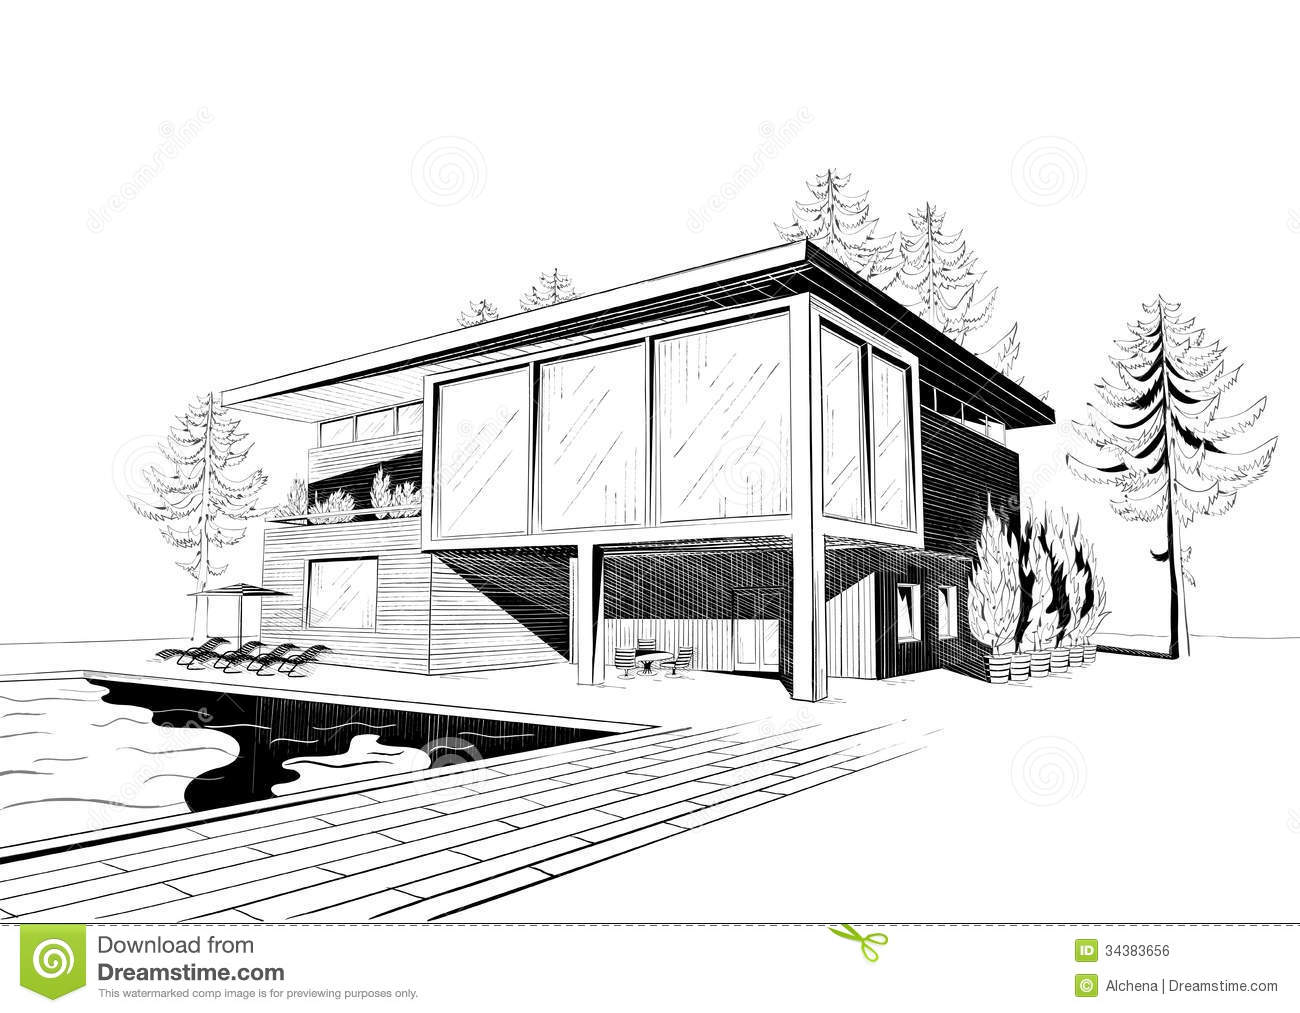 Drawn house modern architectural design House New · Simple Sketches